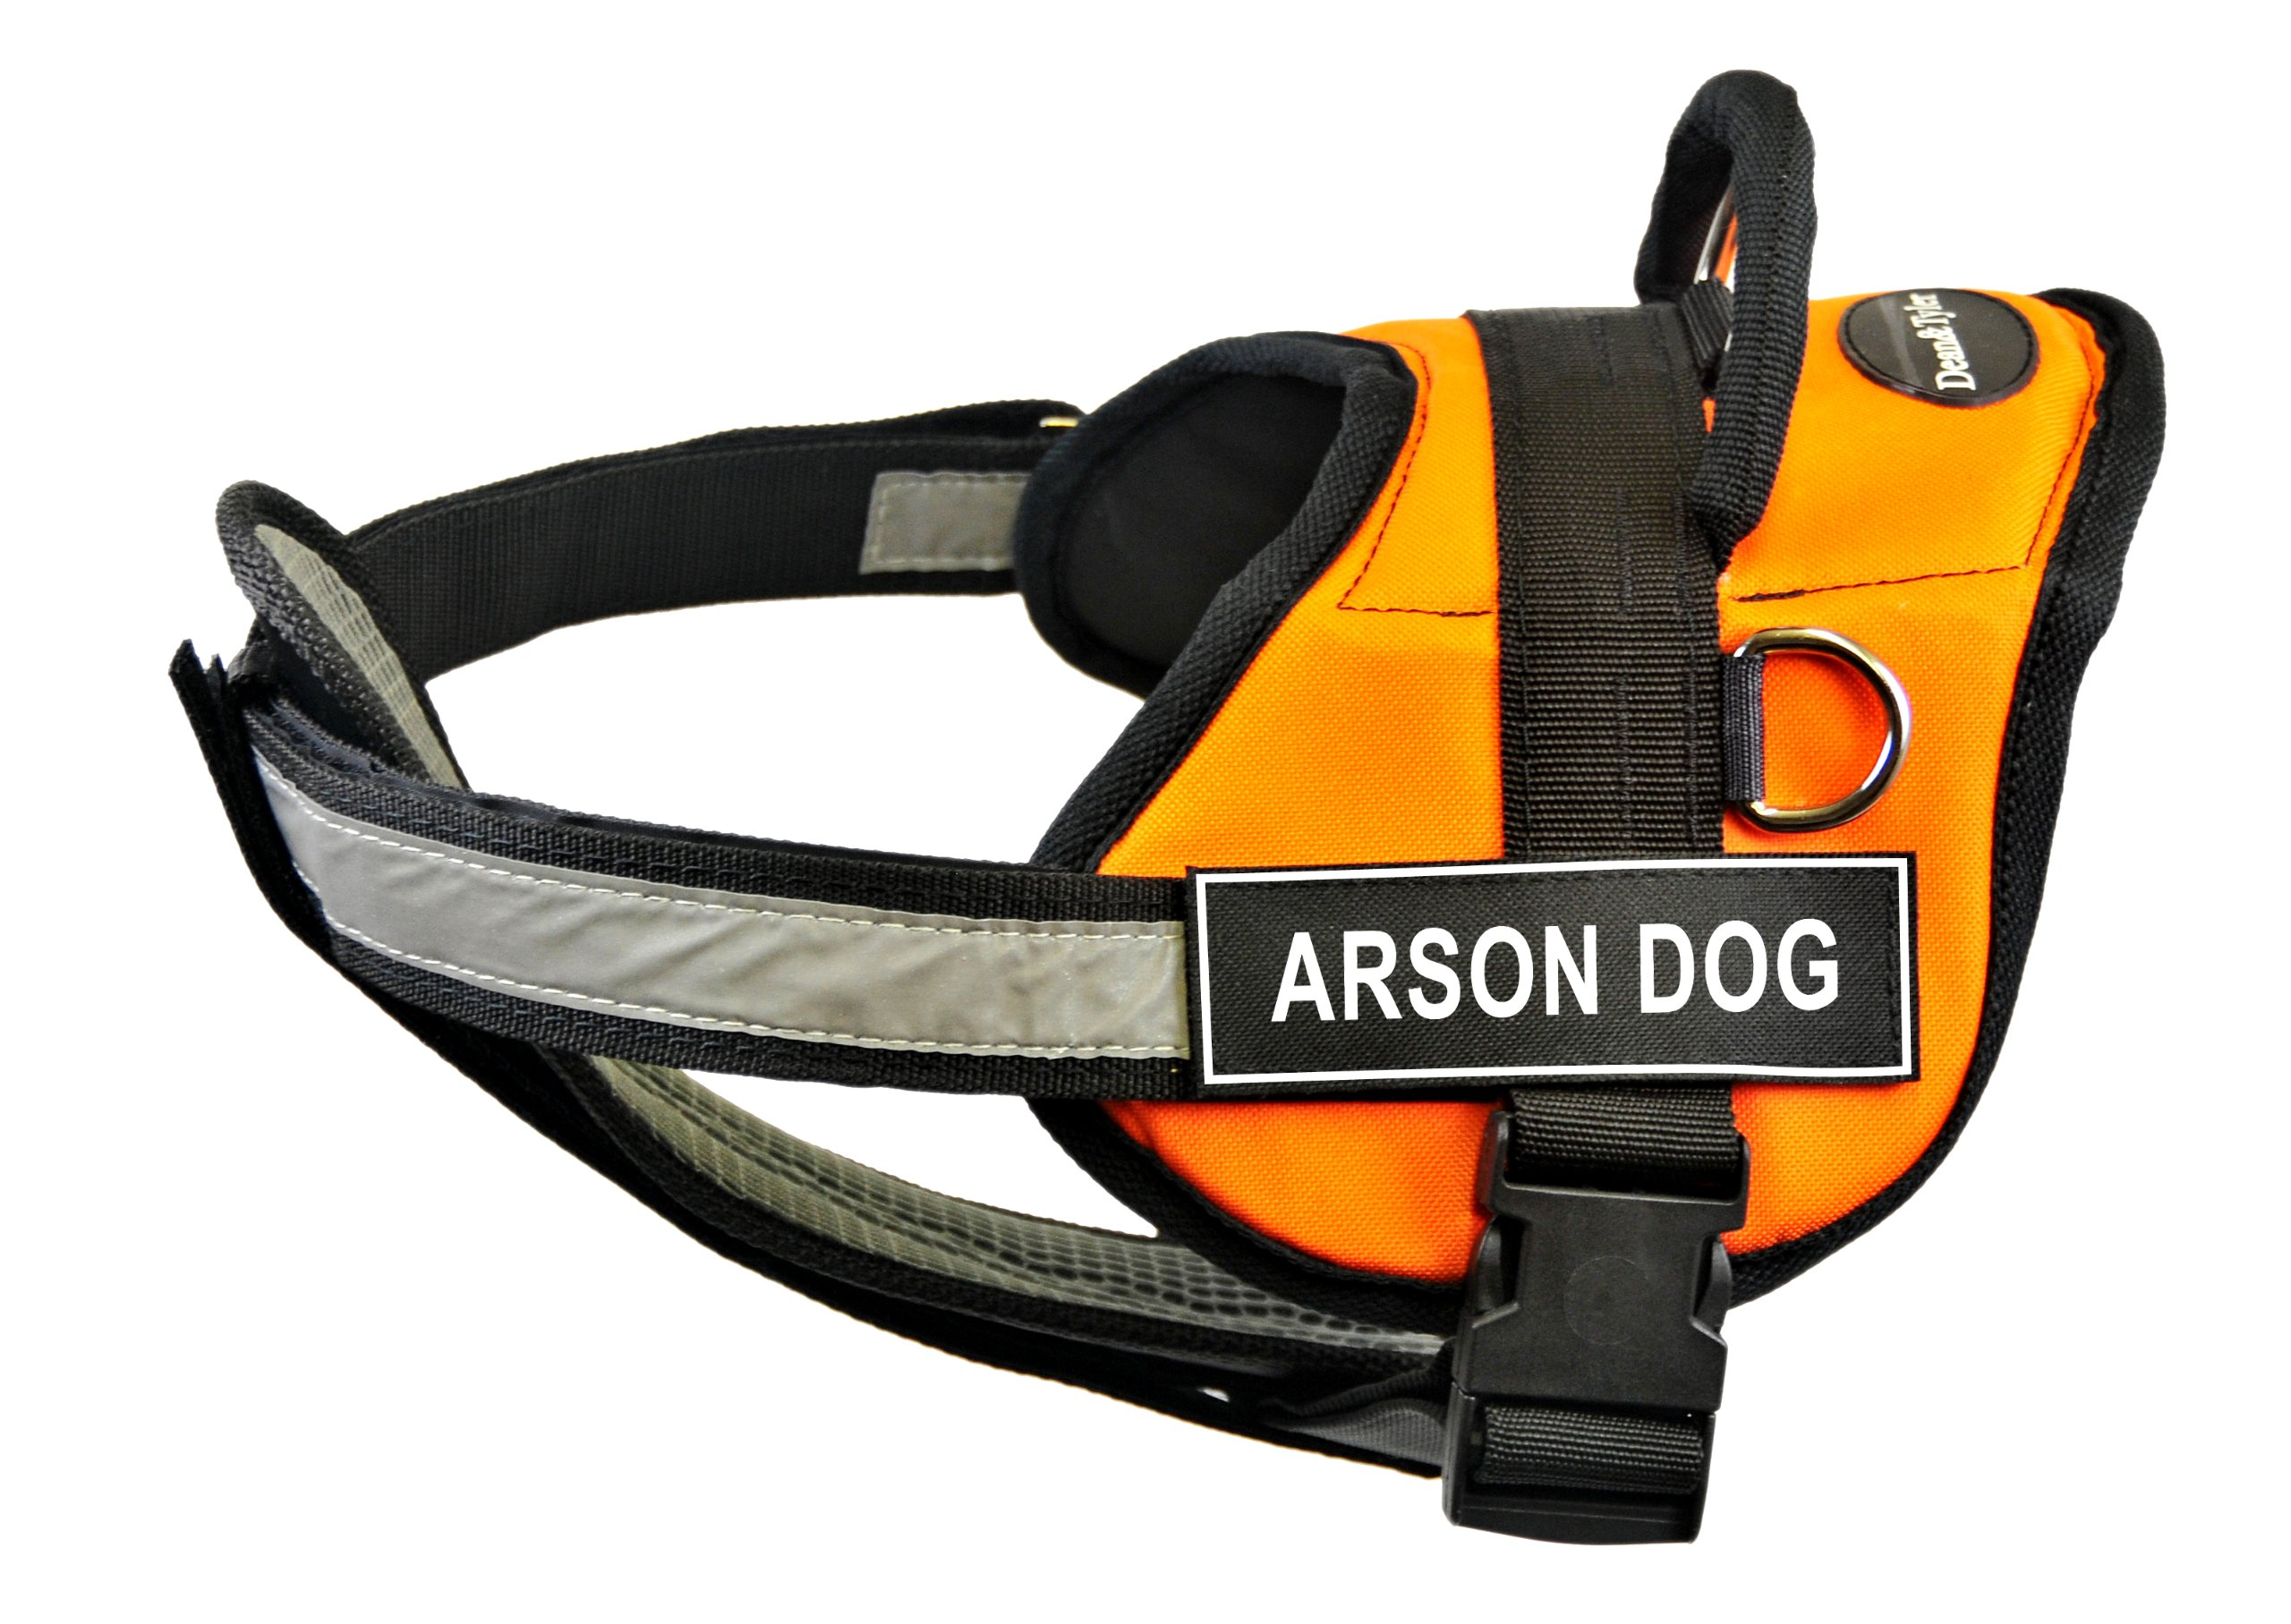 Dean & Tyler 25-Inch to 34-Inch Arson Dog Harness with Padded Reflective Chest Straps, Small, Orange/Black